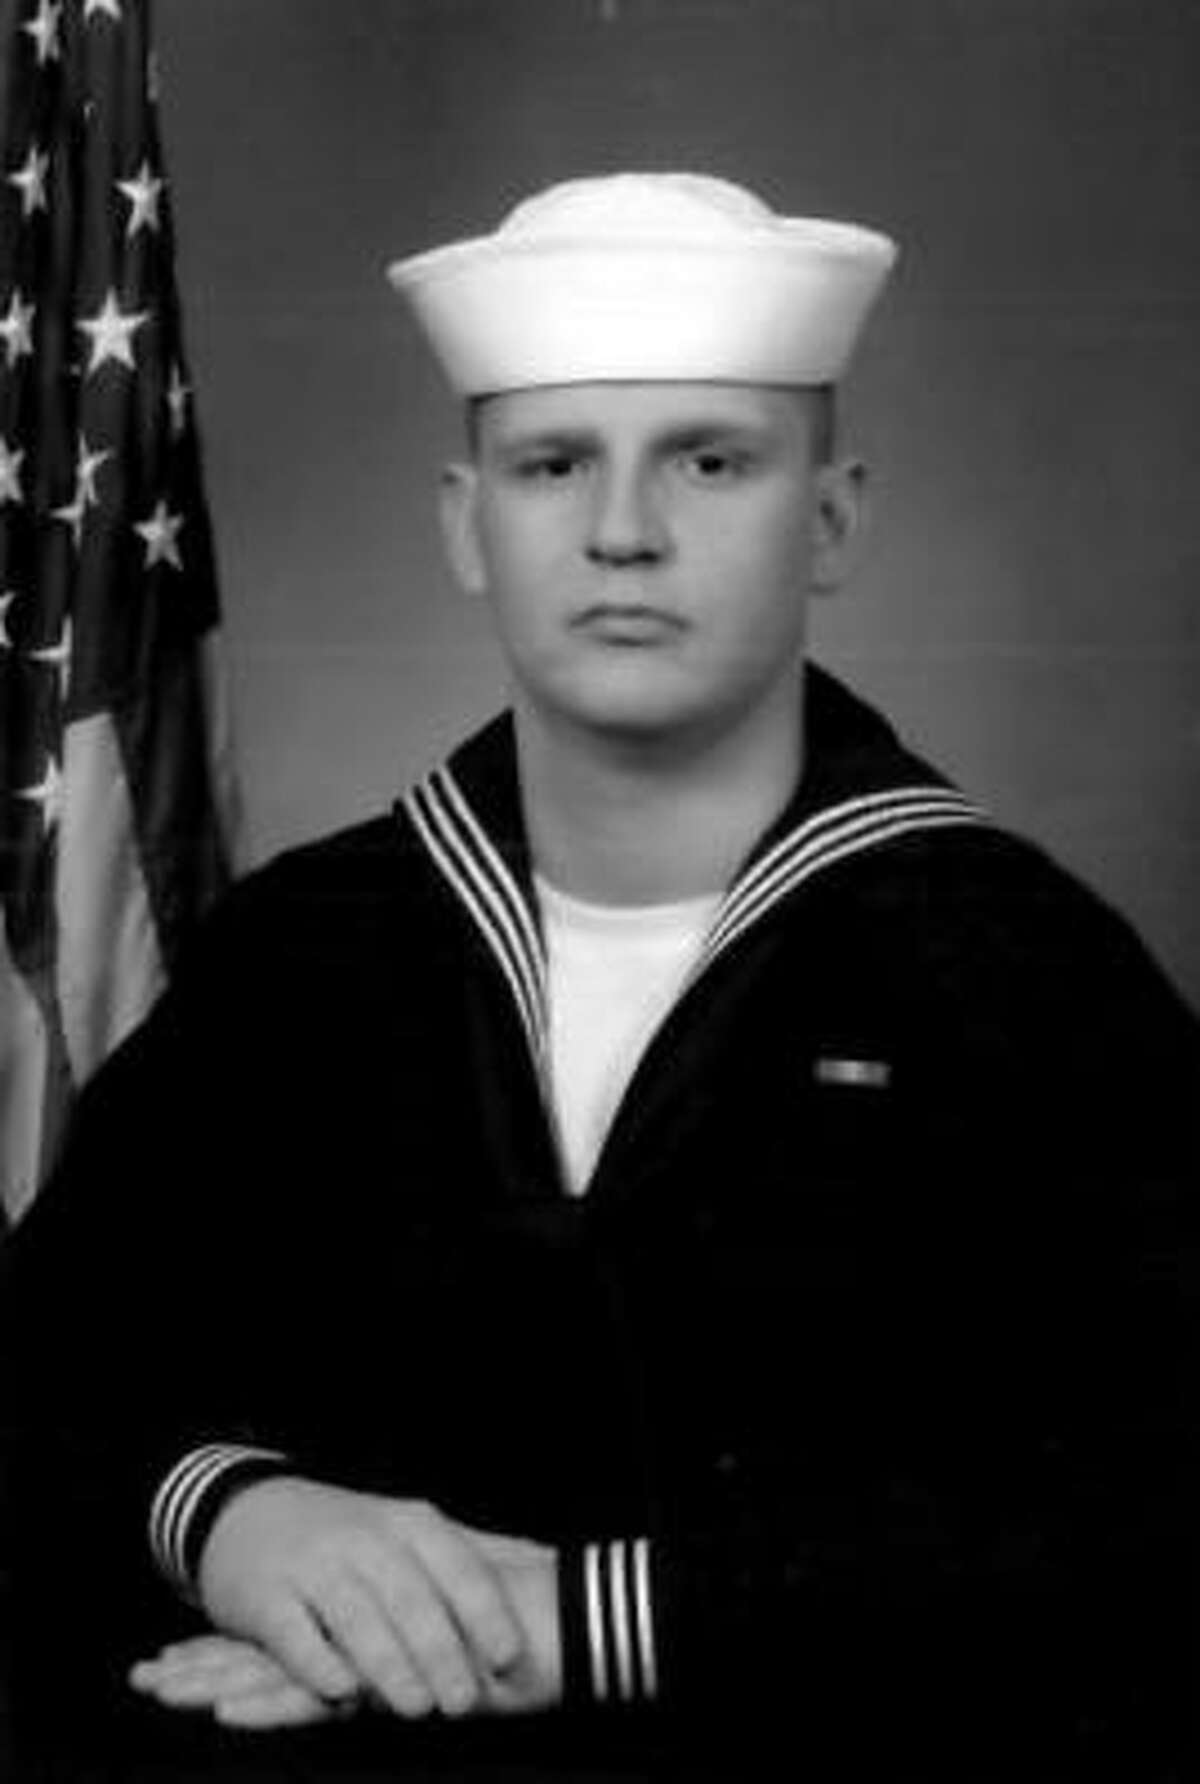 On April 6, Hospitalman Benjamin D. Rast, Naval Medical Center San Diego's Directorate for Nursing Services, Medical and Surgical Nursing Department, was killed in action while conducting a dismounted patrol northeast of patrol base Alcatraz, Helmand Province, Afghanistan.